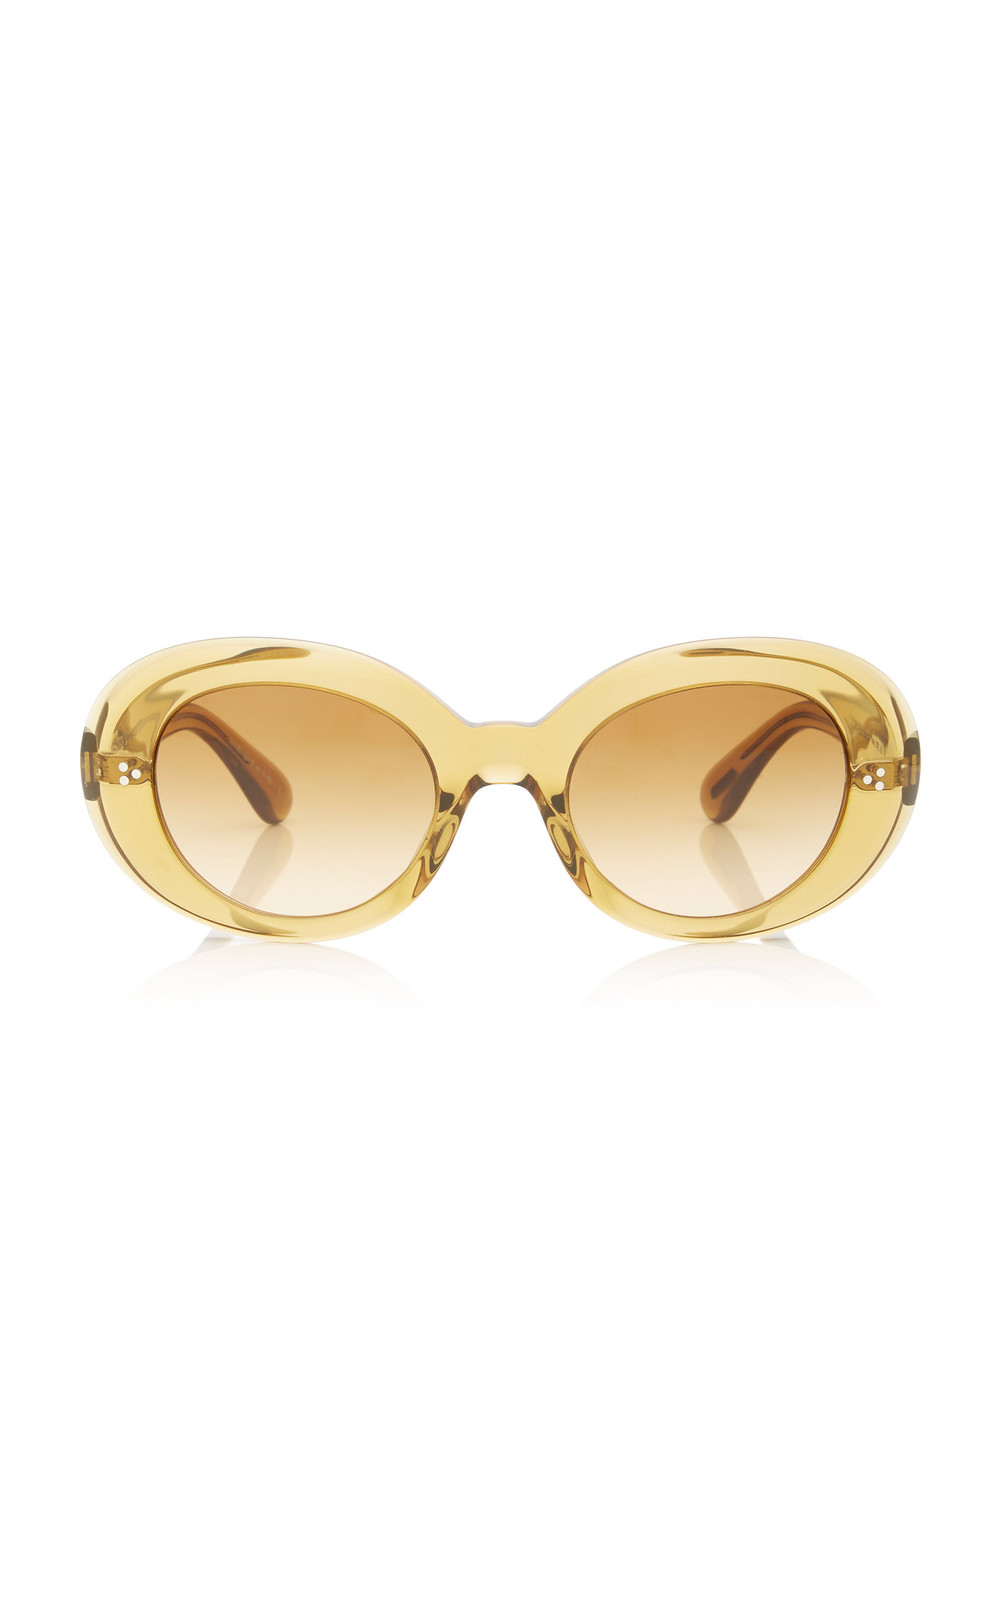 3ab4cc4aa10e3 Oliver Peoples Erissa Round-Frame Acetate Sunglasses in yellow